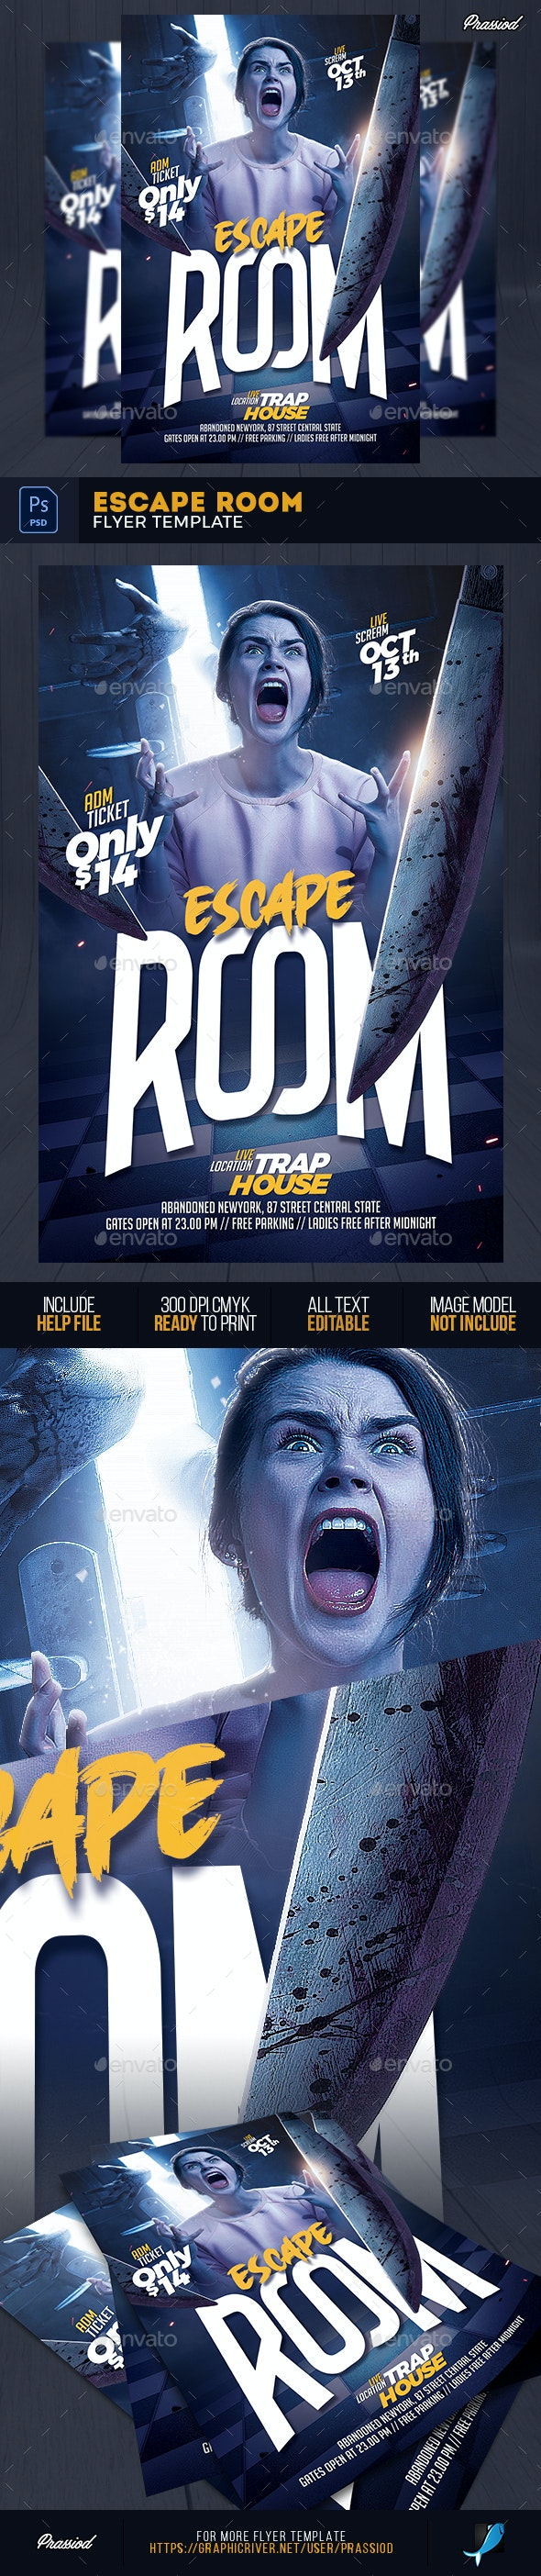 Escape Room Flyer Template - Events Flyers